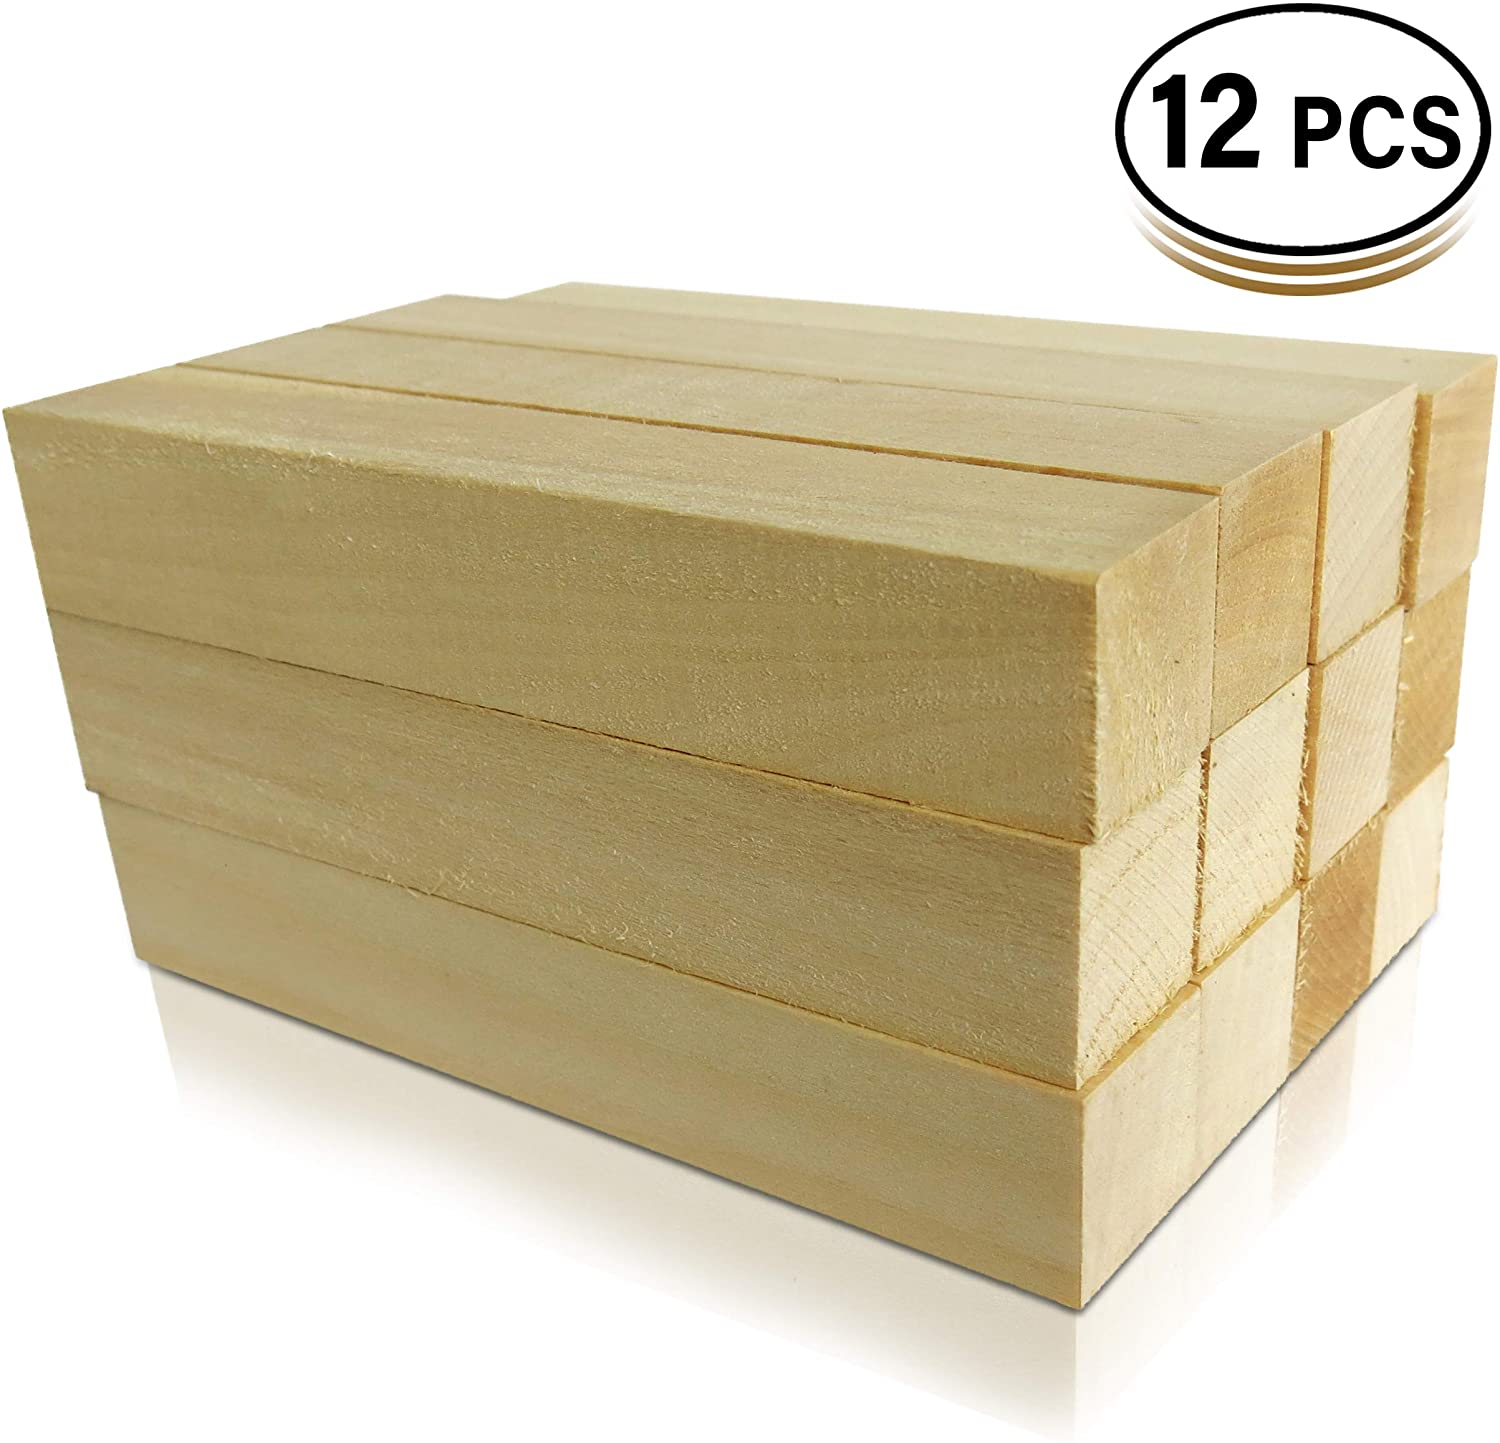 12 Pack Basswood Blocks 6 X 1 X 1 Inches Premium Soft Wood Blocks for Carving and Whittling